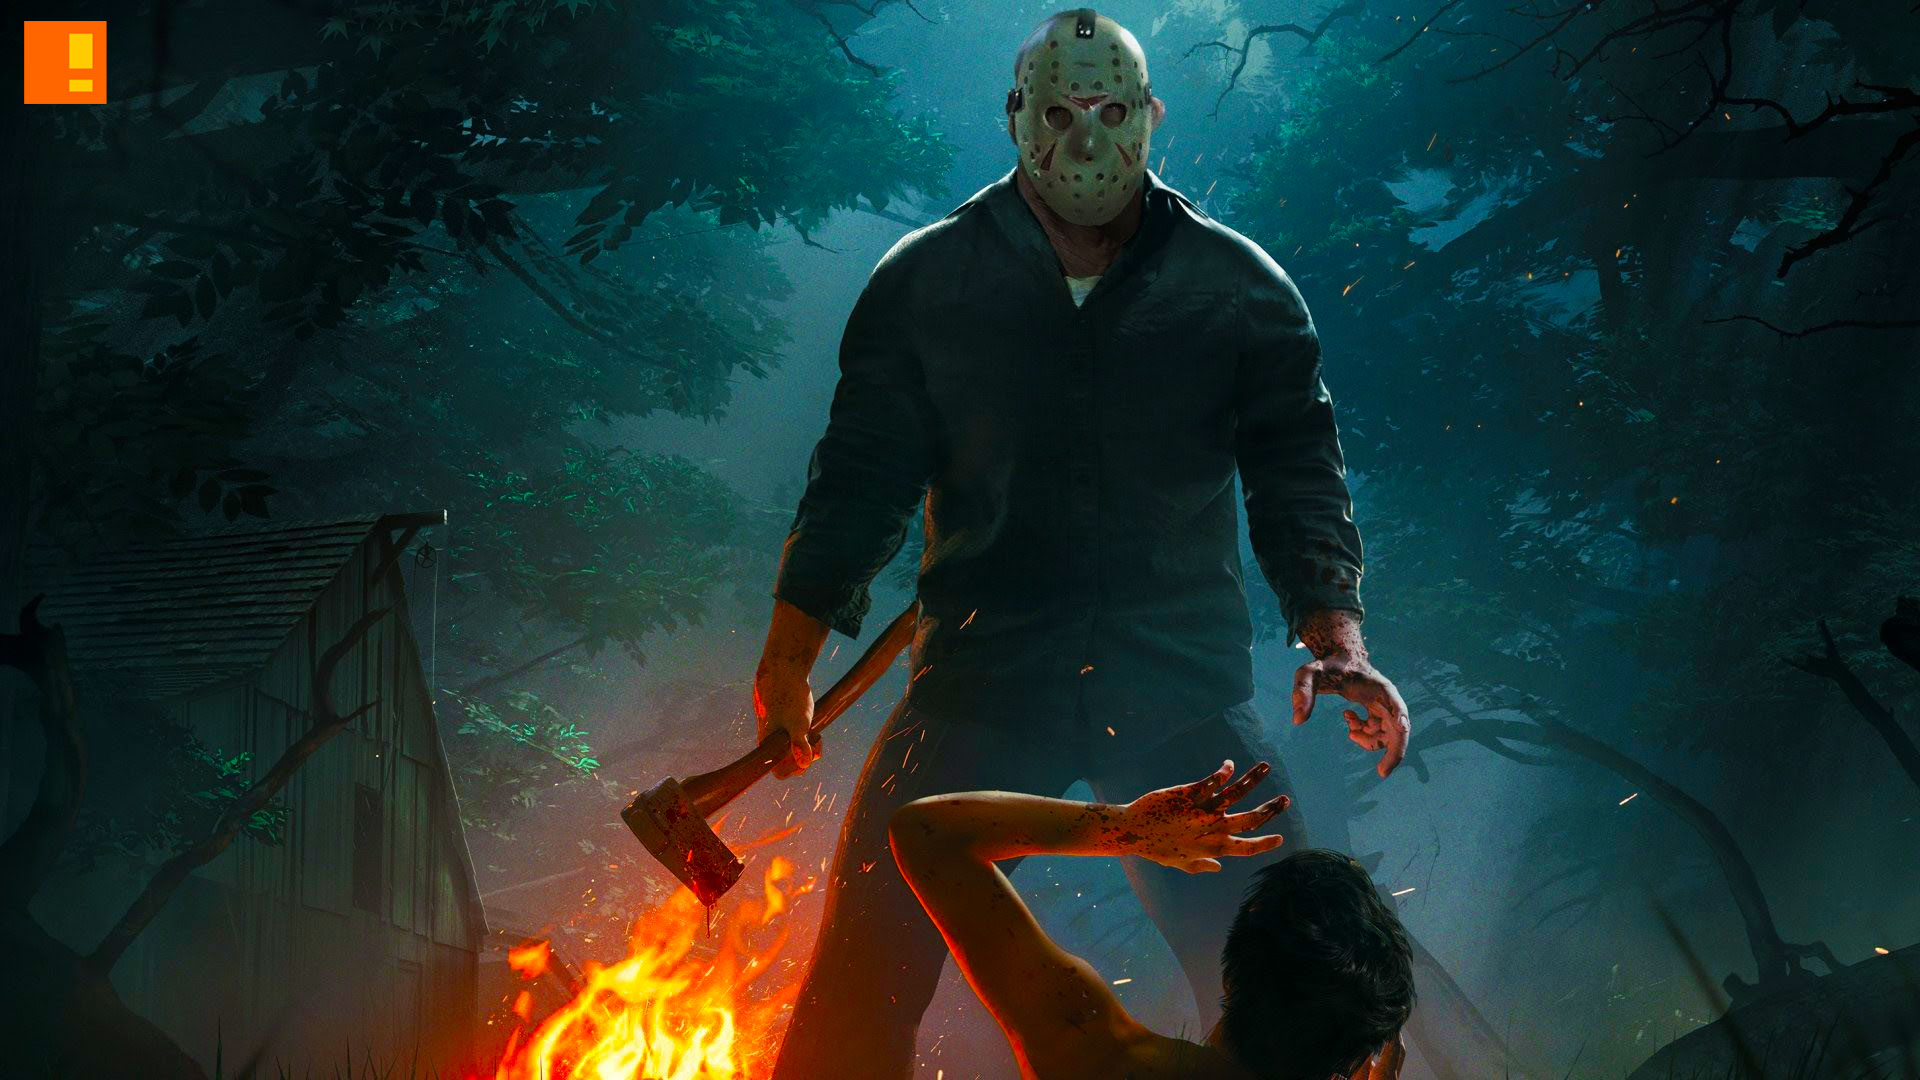 friday the 13th: the game, friday the 13th, friday 13th, jason voorhees, early alpha, serial killer, gun media, trailer , entertainment on tap, the action pixel